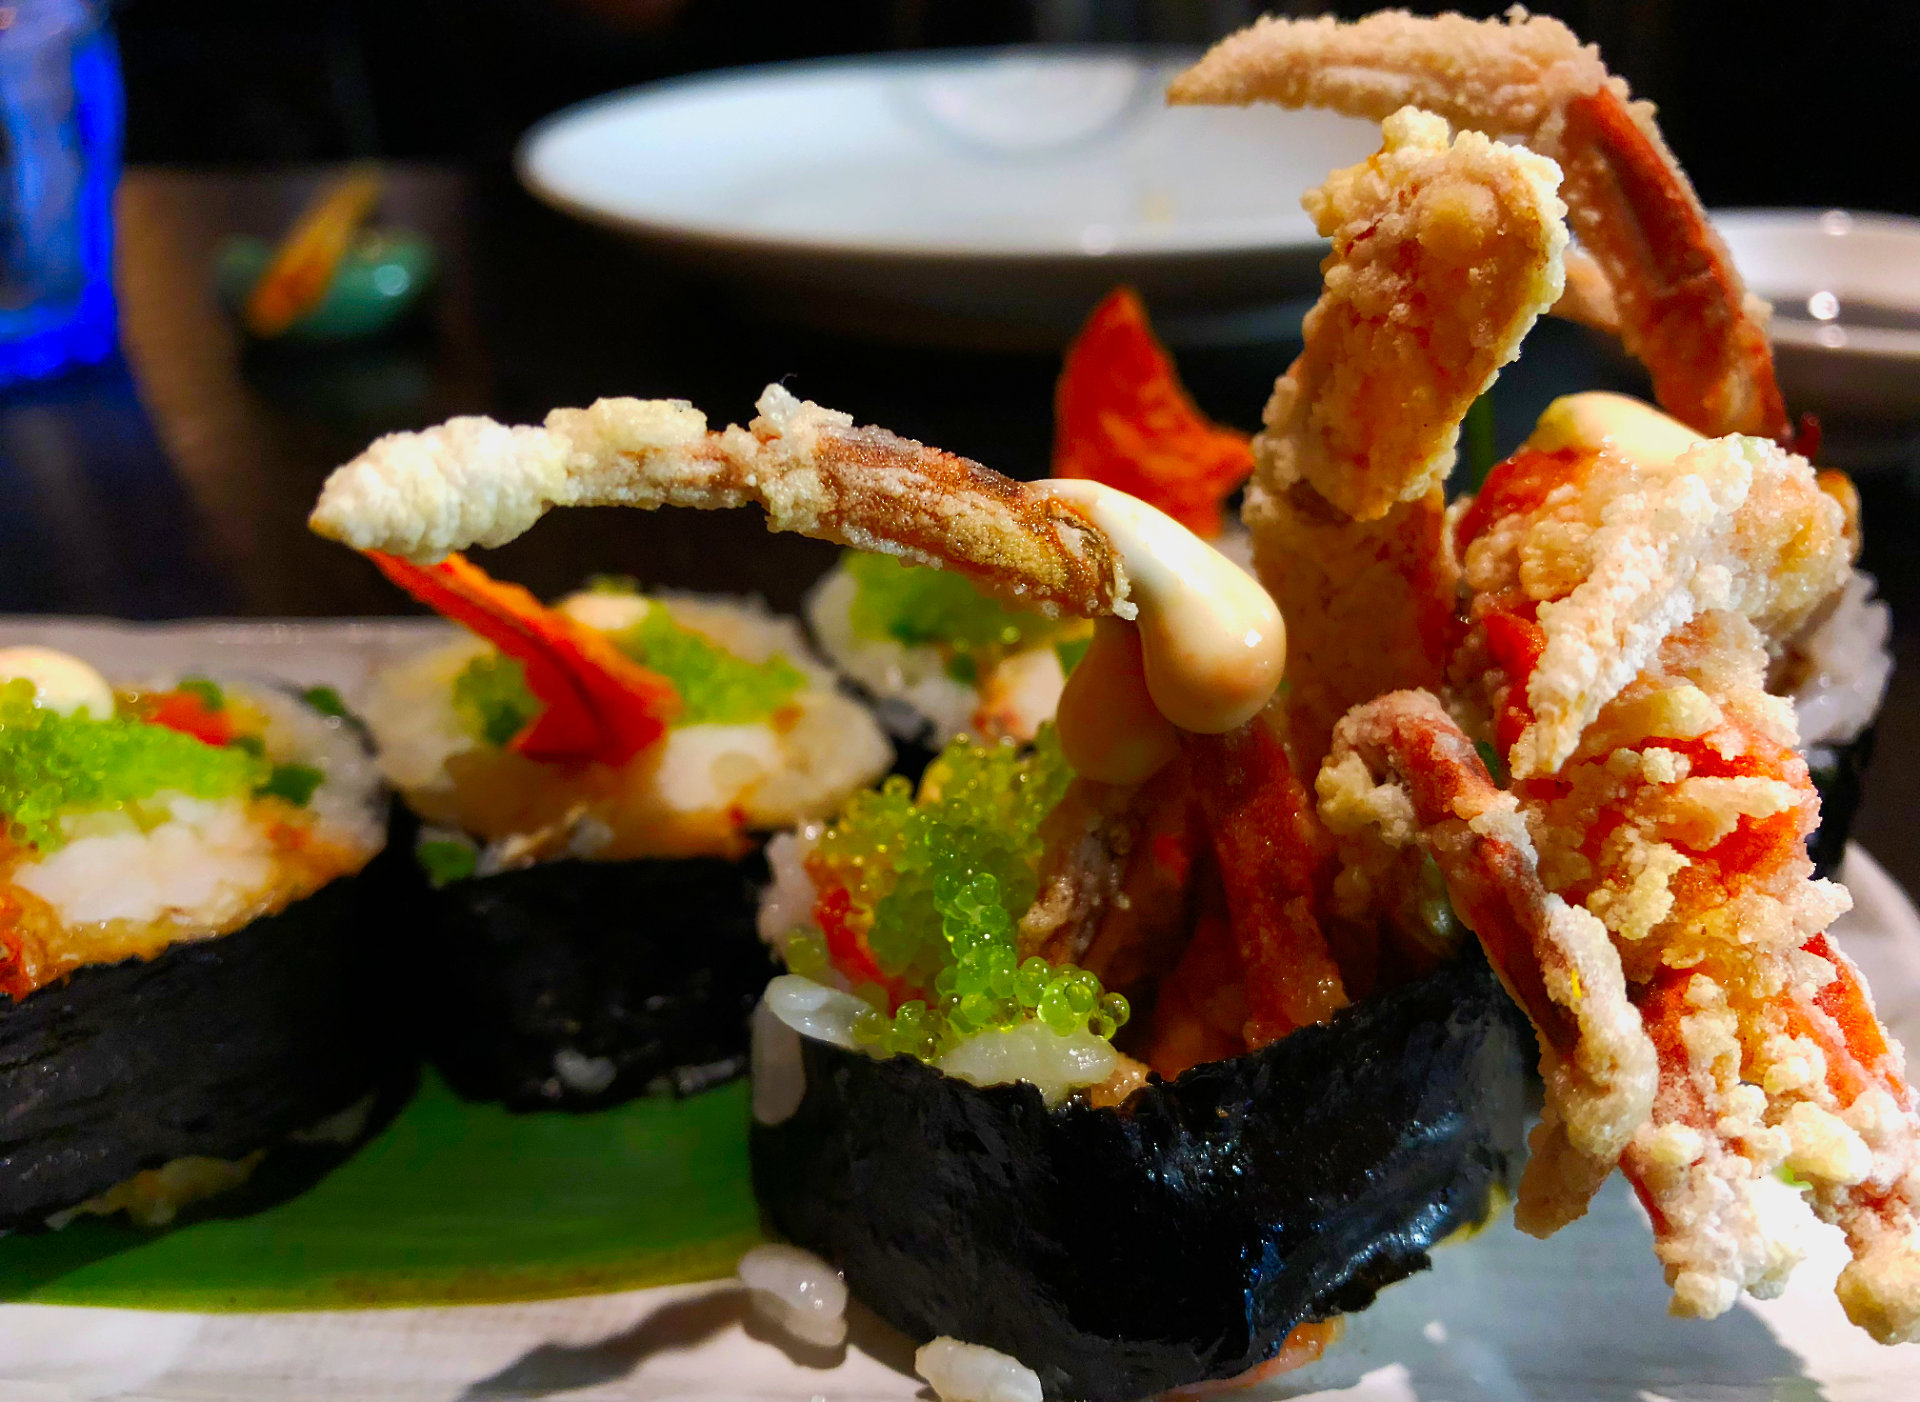 The Soft Shell Crab Sushi at Flesh and Buns, Fitzrovia